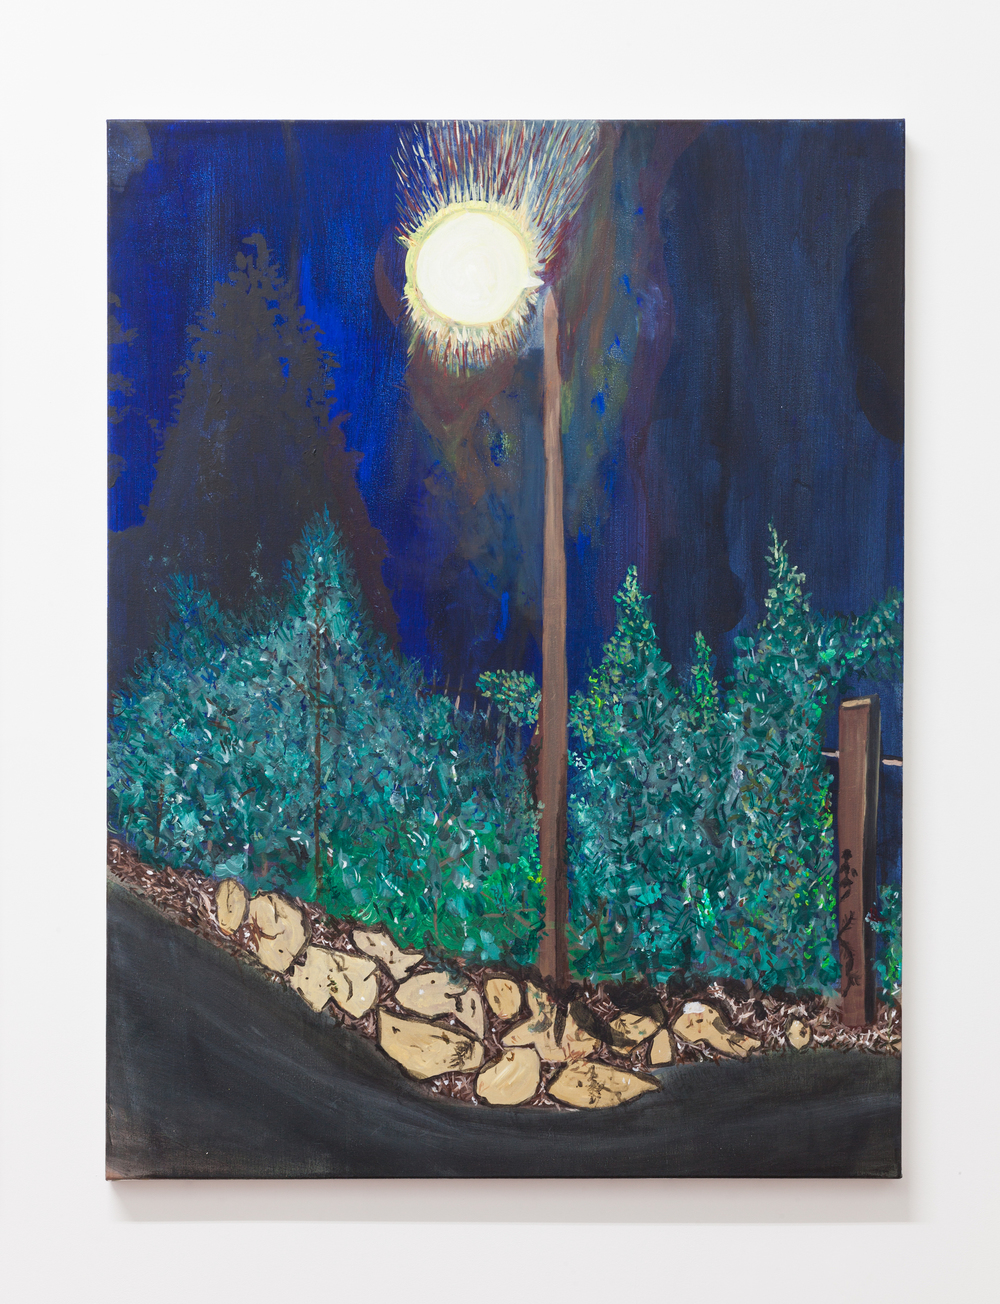 Jocko Weyland,  Path at Night , 2014, acrylic on canvas, 48 x 36 in